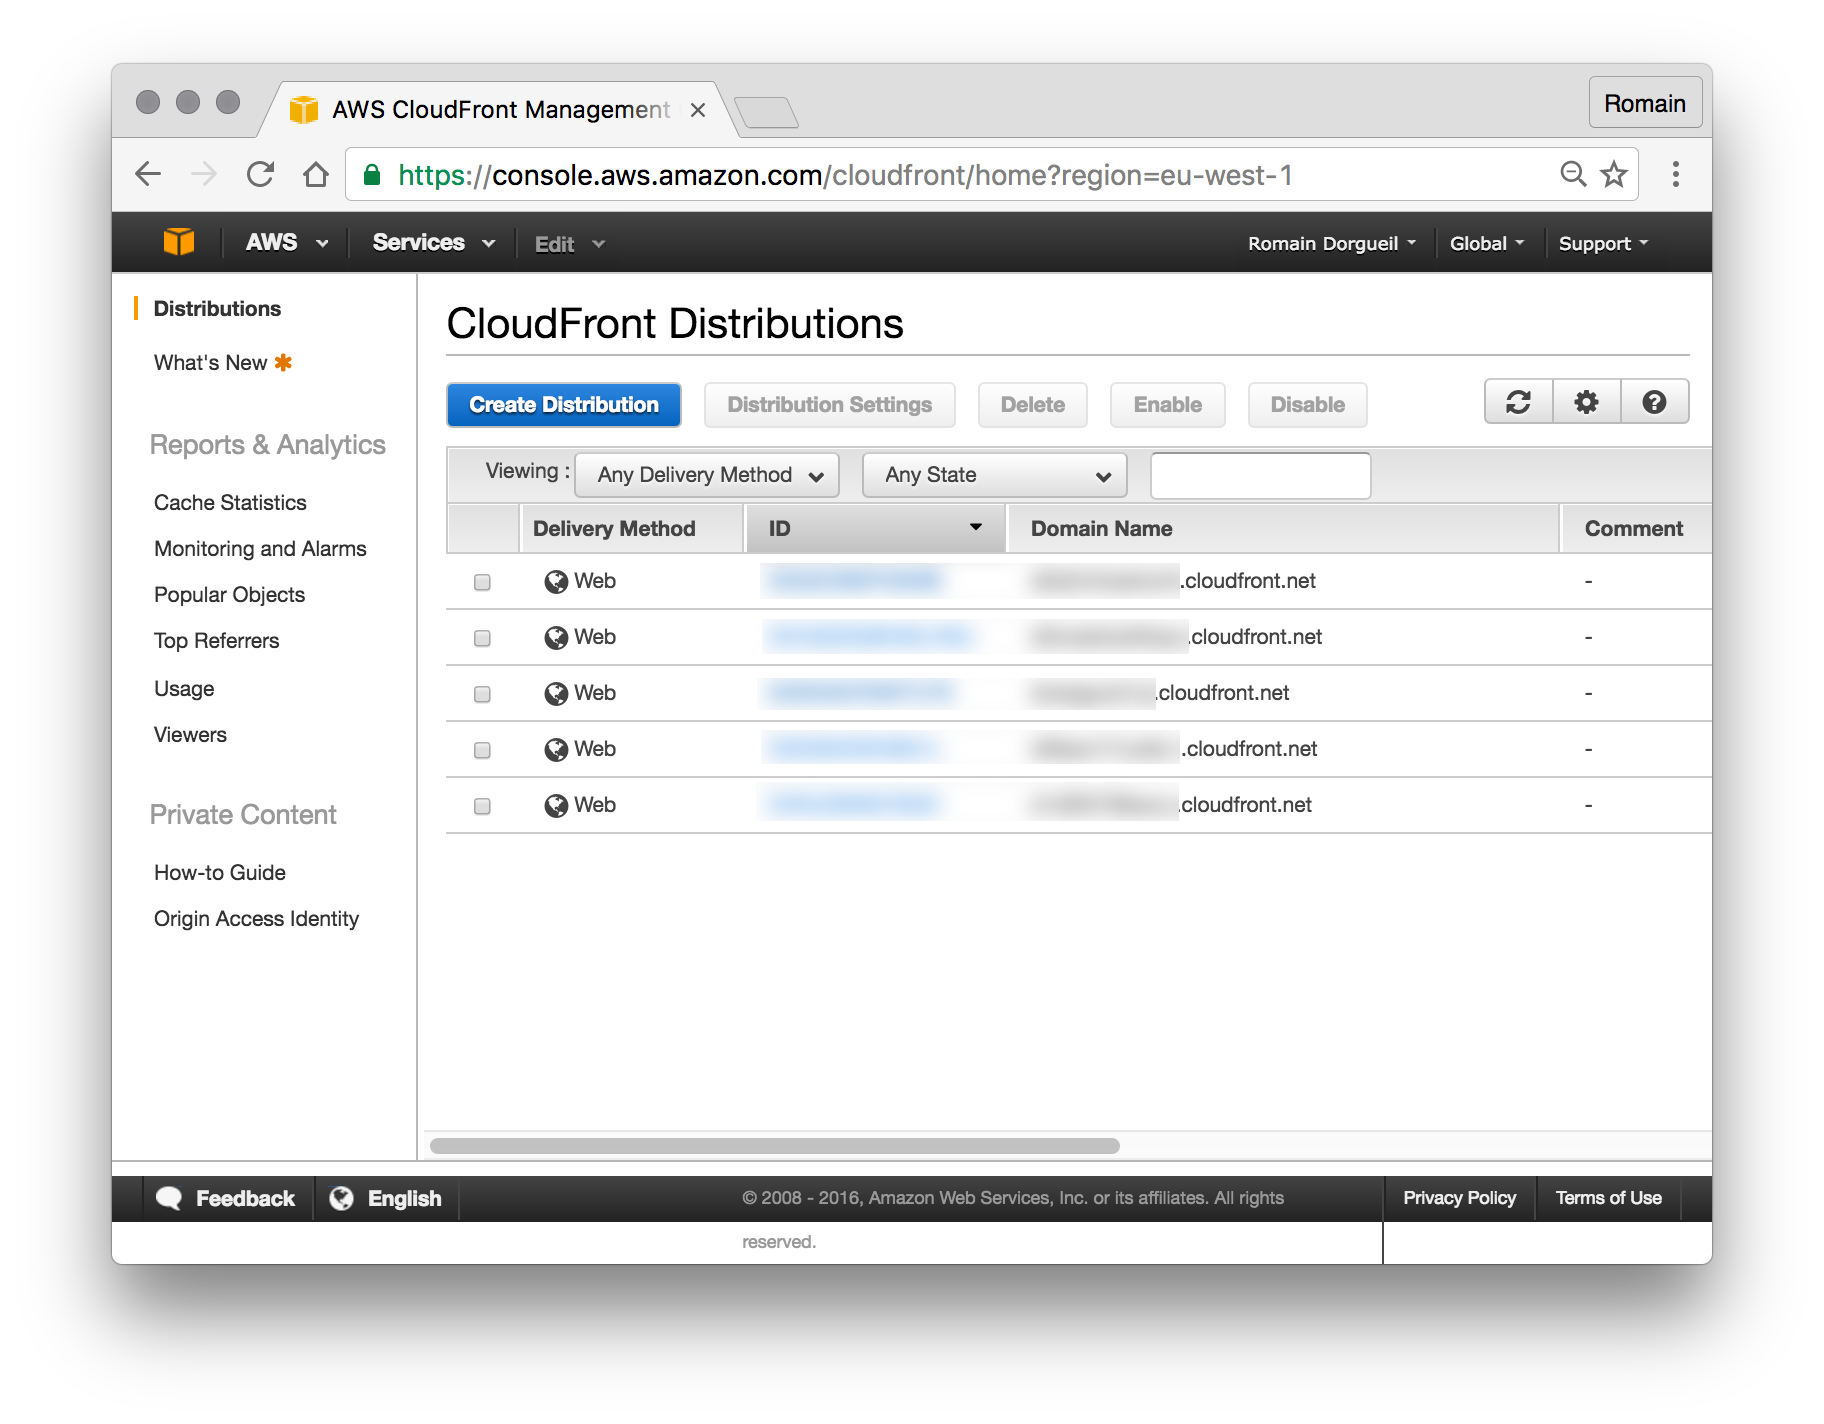 Cloudfront distributions.